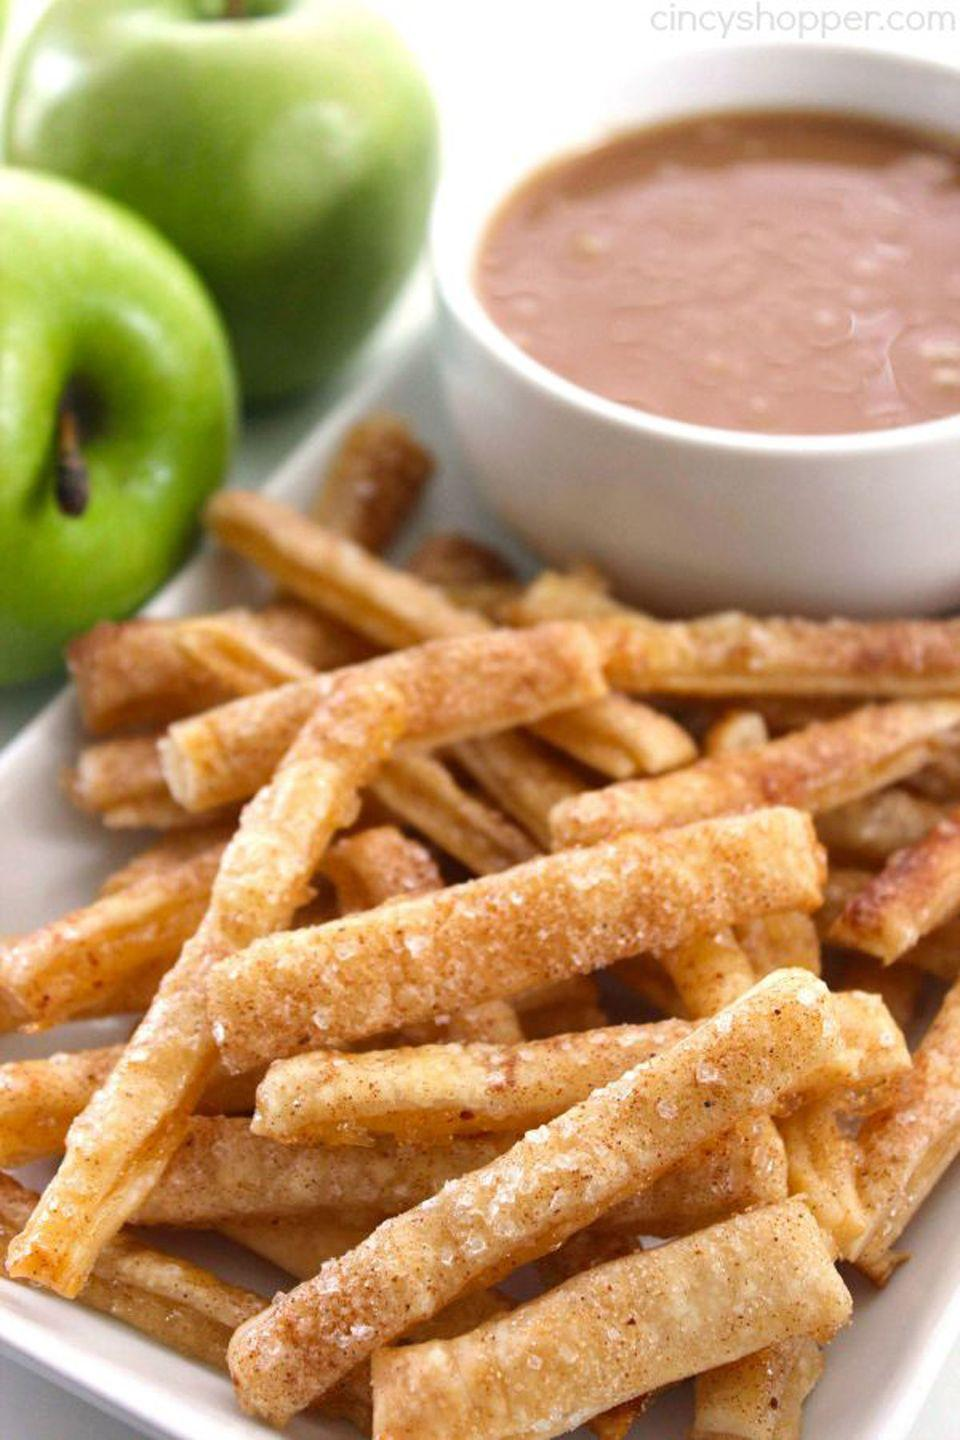 "<p>Dip these baked apple pie fries in caramel, whipped cream, or chocolate sauce.</p><p><strong>Get the recipe at <a href=""http://cincyshopper.com/apple-pie-fries/"" rel=""nofollow noopener"" target=""_blank"" data-ylk=""slk:Cincy Shopper"" class=""link rapid-noclick-resp"">Cincy Shopper</a>.</strong></p><p><a class=""link rapid-noclick-resp"" href=""https://www.amazon.com/Hamilton-Beach-70730-Processor-Vegetable/dp/B008J8MJIQ?tag=syn-yahoo-20&ascsubtag=%5Bartid%7C10050.g.650%5Bsrc%7Cyahoo-us"" rel=""nofollow noopener"" target=""_blank"" data-ylk=""slk:SHOP FOOD PROCESSORS"">SHOP FOOD PROCESSORS</a><br></p>"